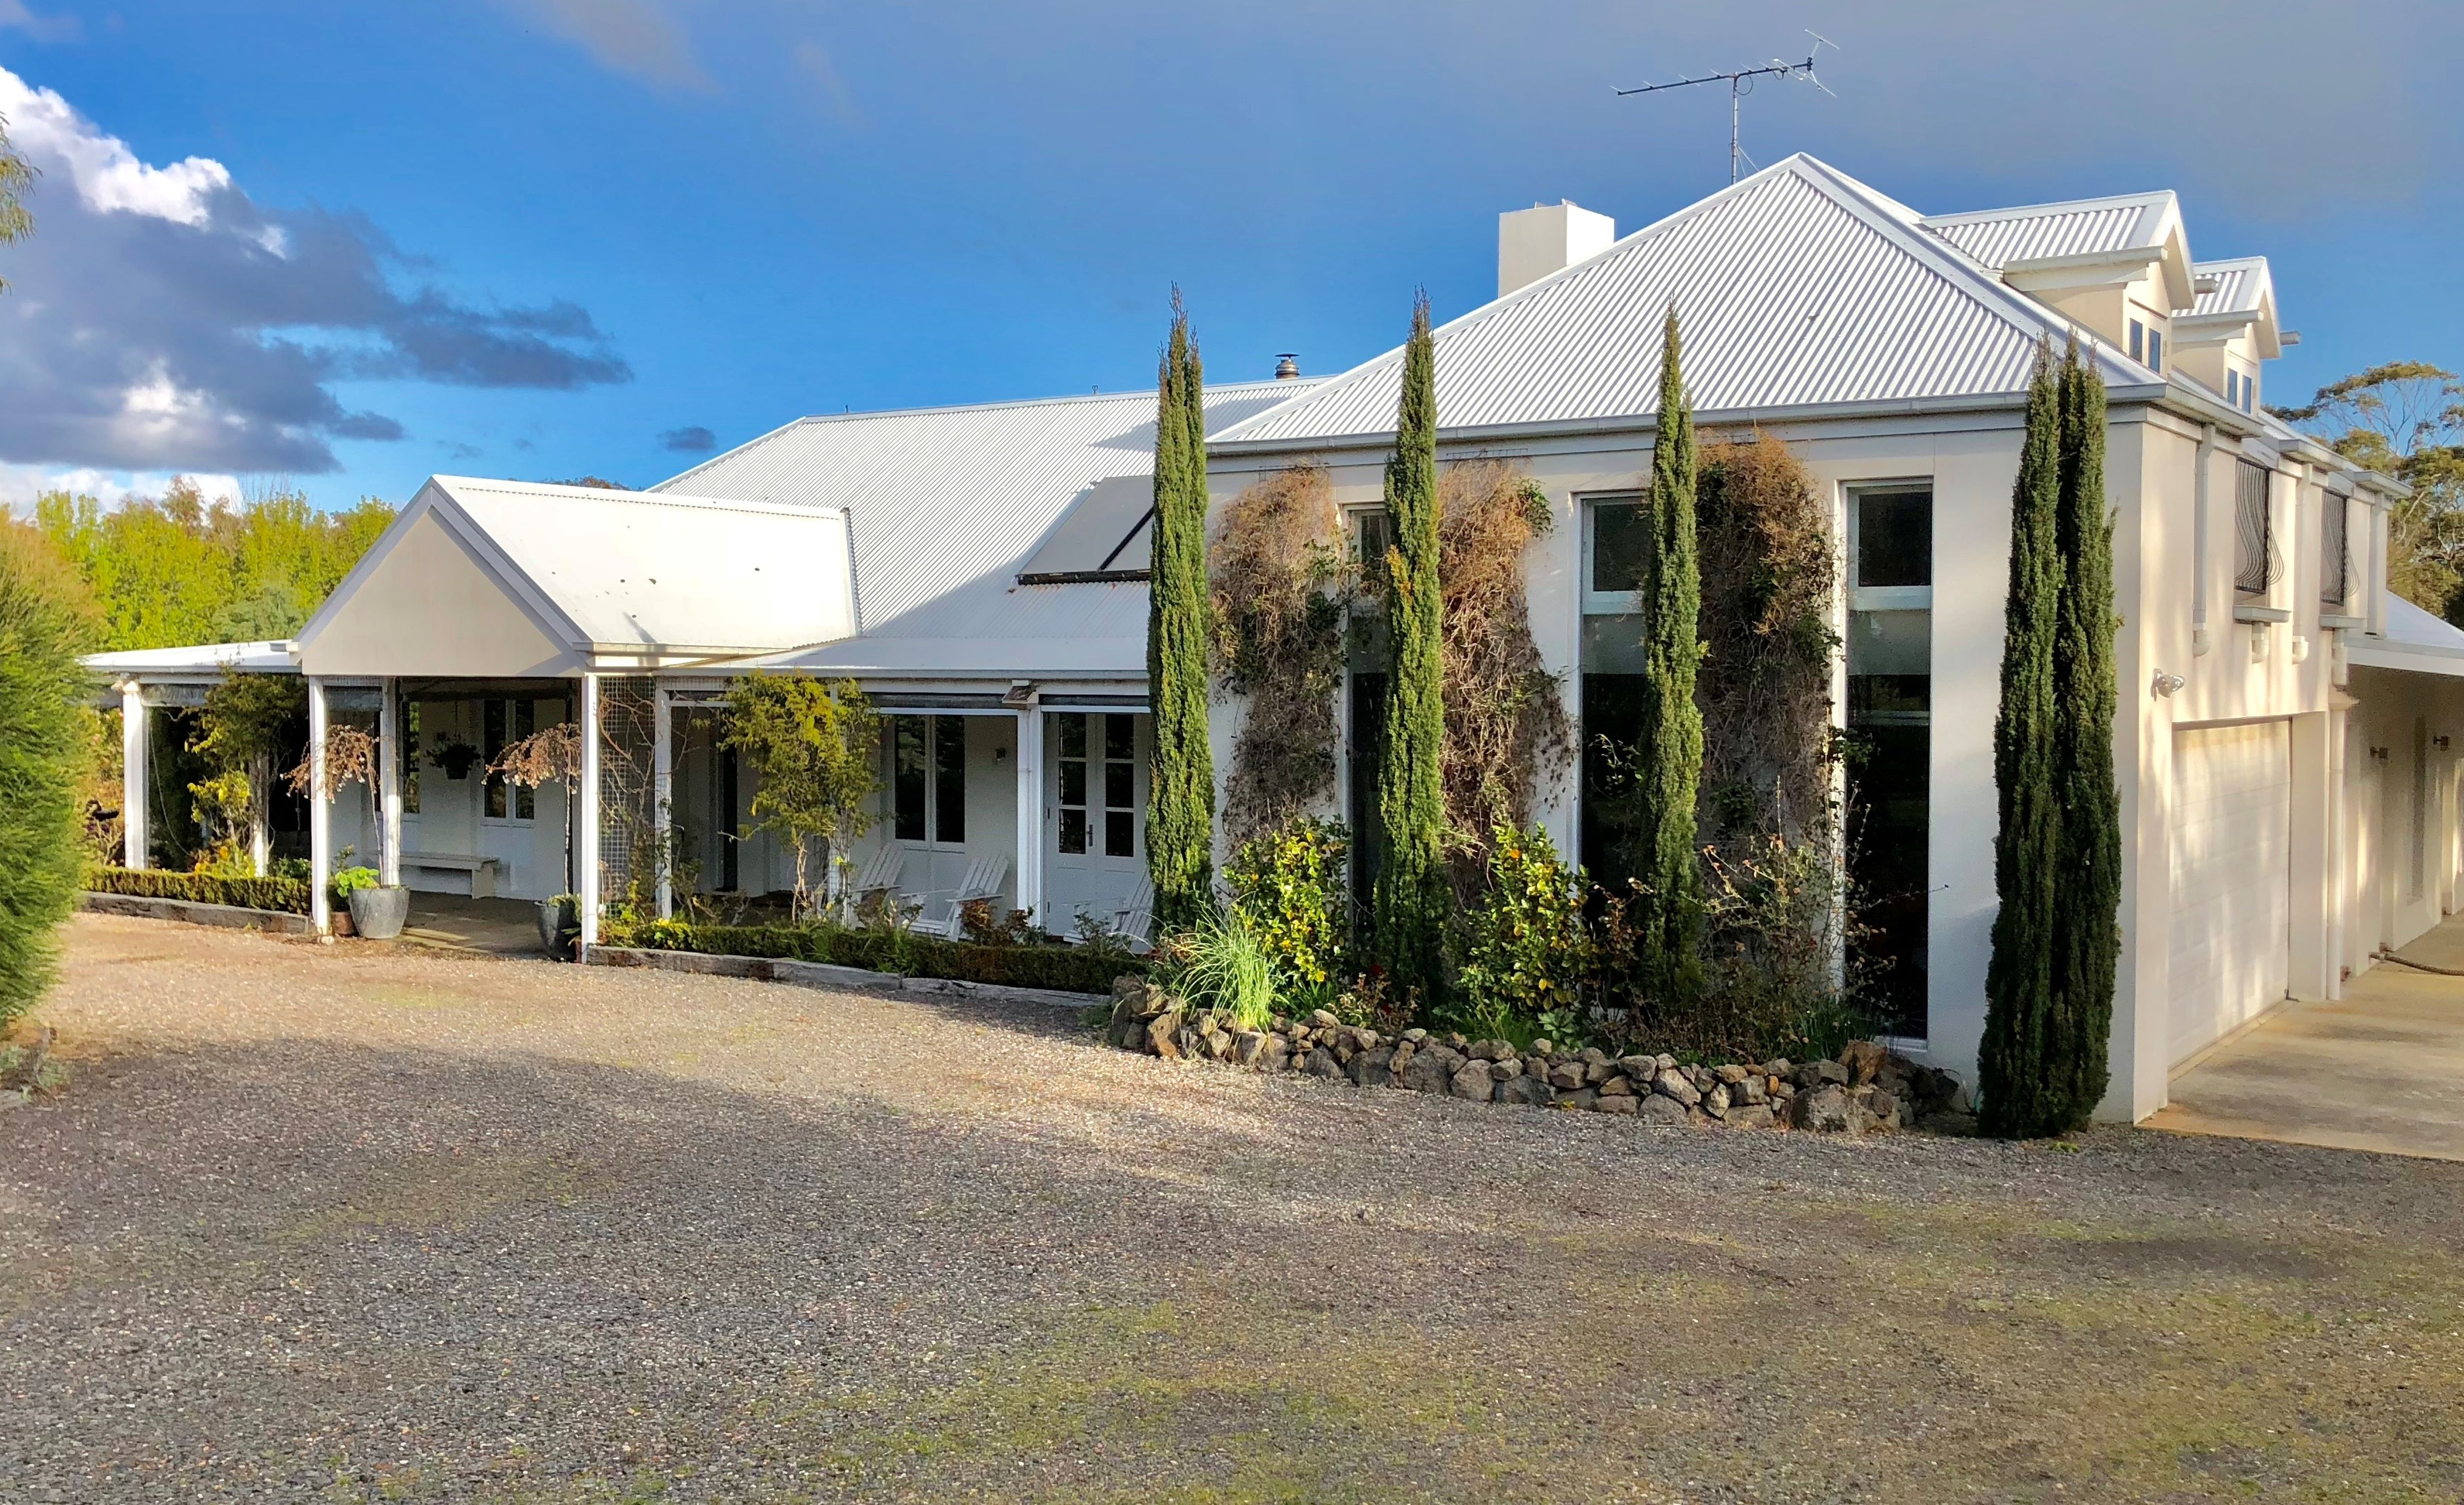 TO BE OFFERED AS A WHOLE (63.25 HA) OR IF NOT SOLD IN 2 LOTS